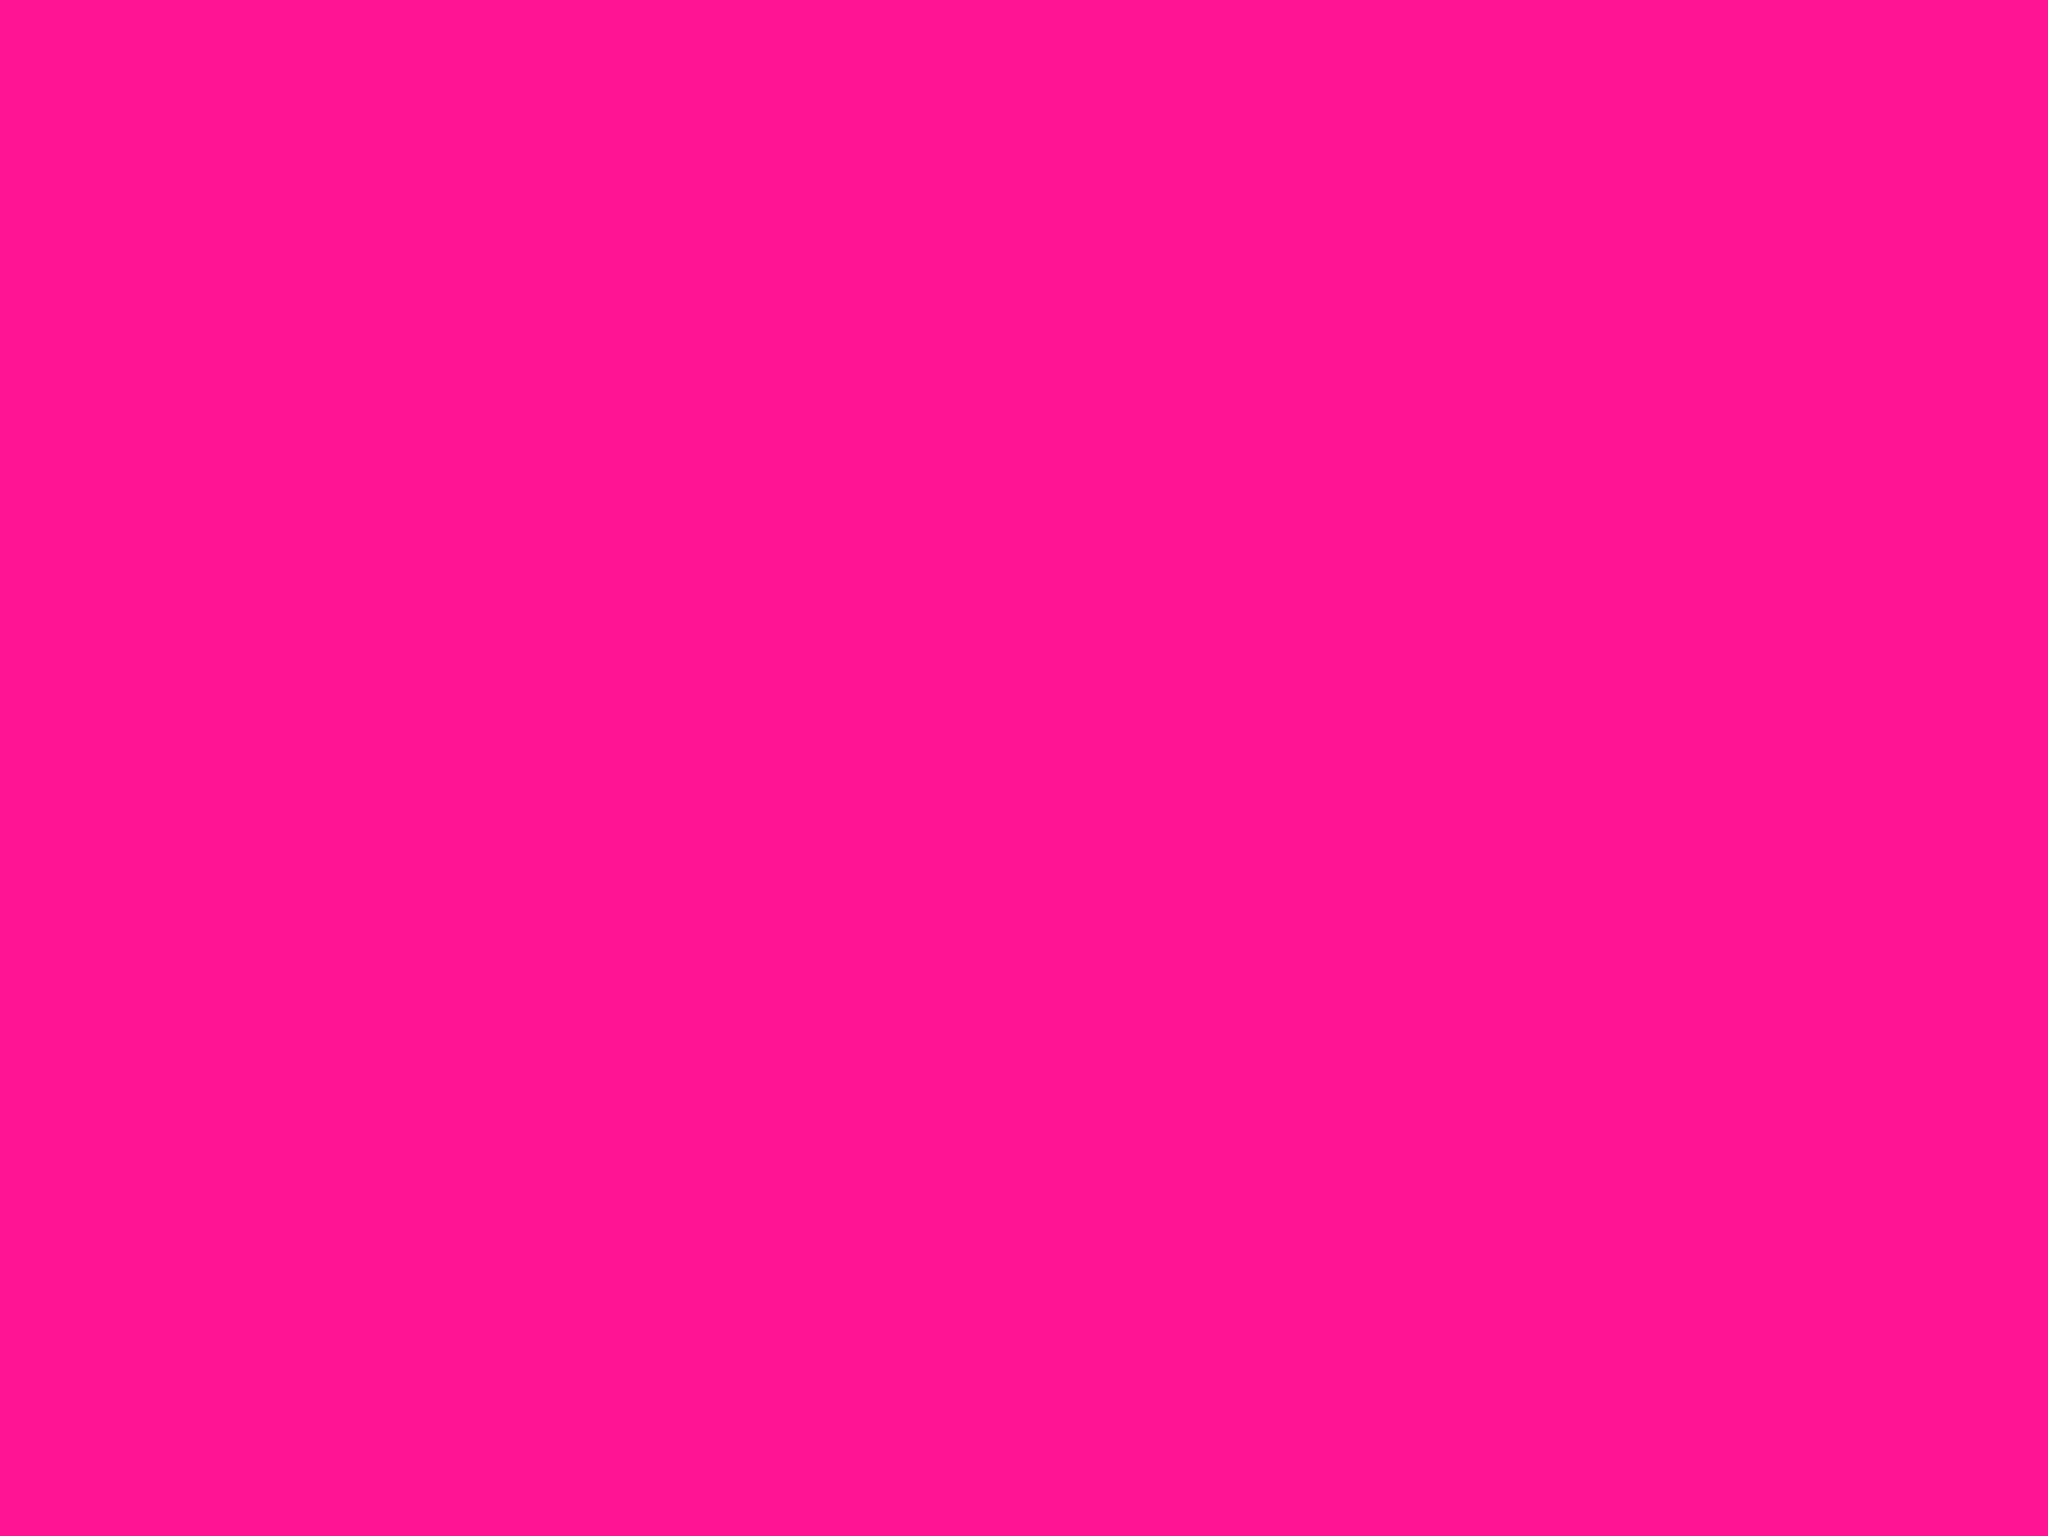 2048x1536 Deep Pink Solid Color Background